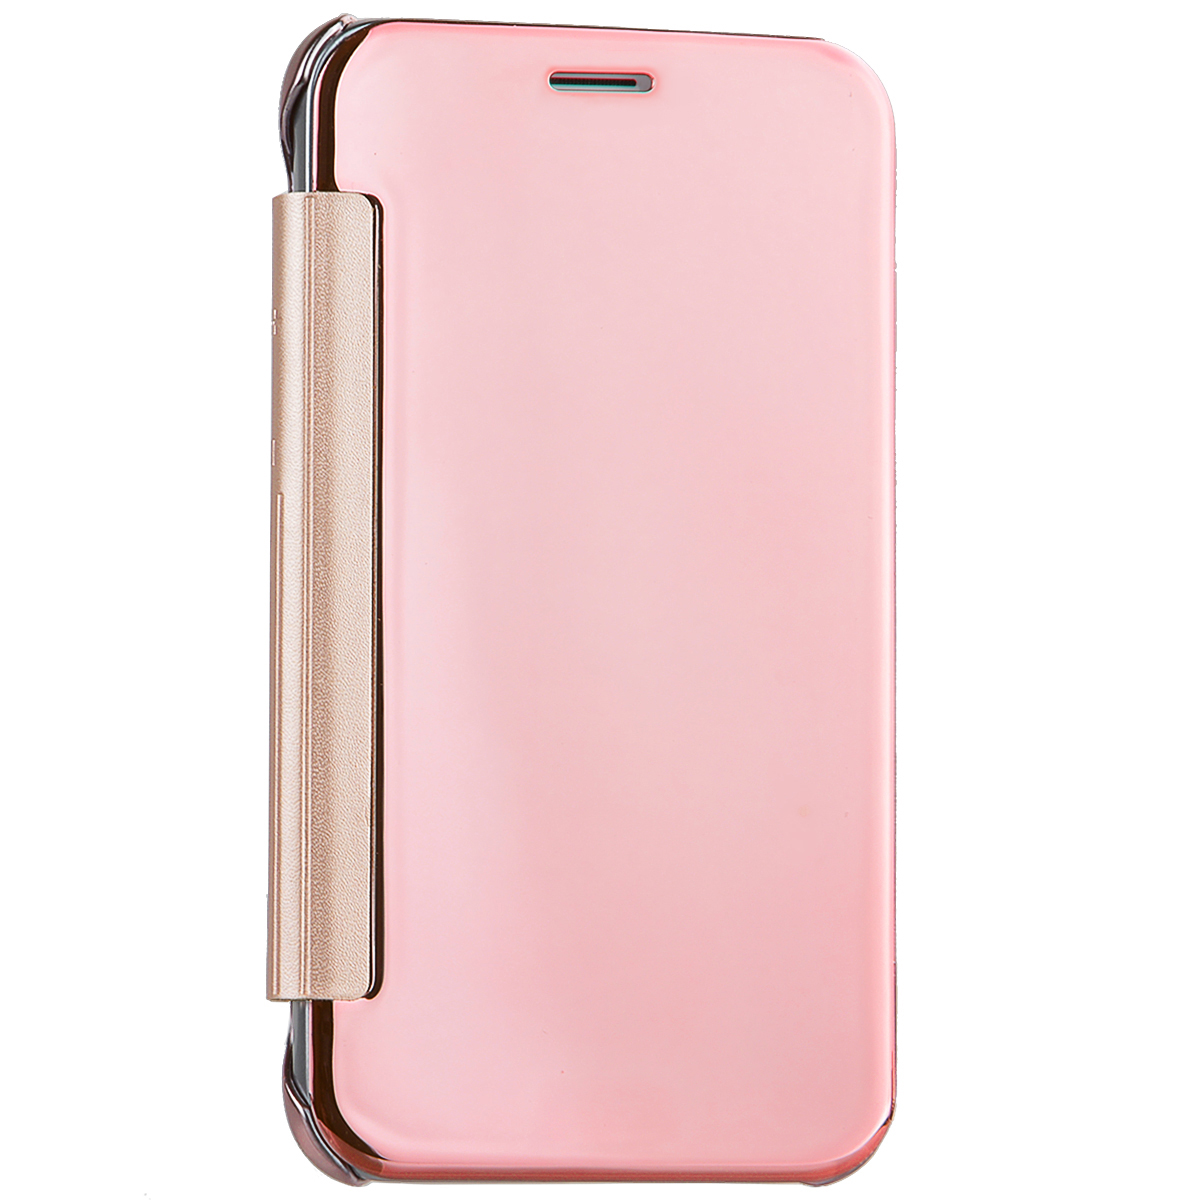 Yokata Luxury Mirror Roségold Flip Case für Samsung Galaxy S6 S7 Edge J1 J5 J7 A3 A5 2016 J710 Hard Phone Protect Cover